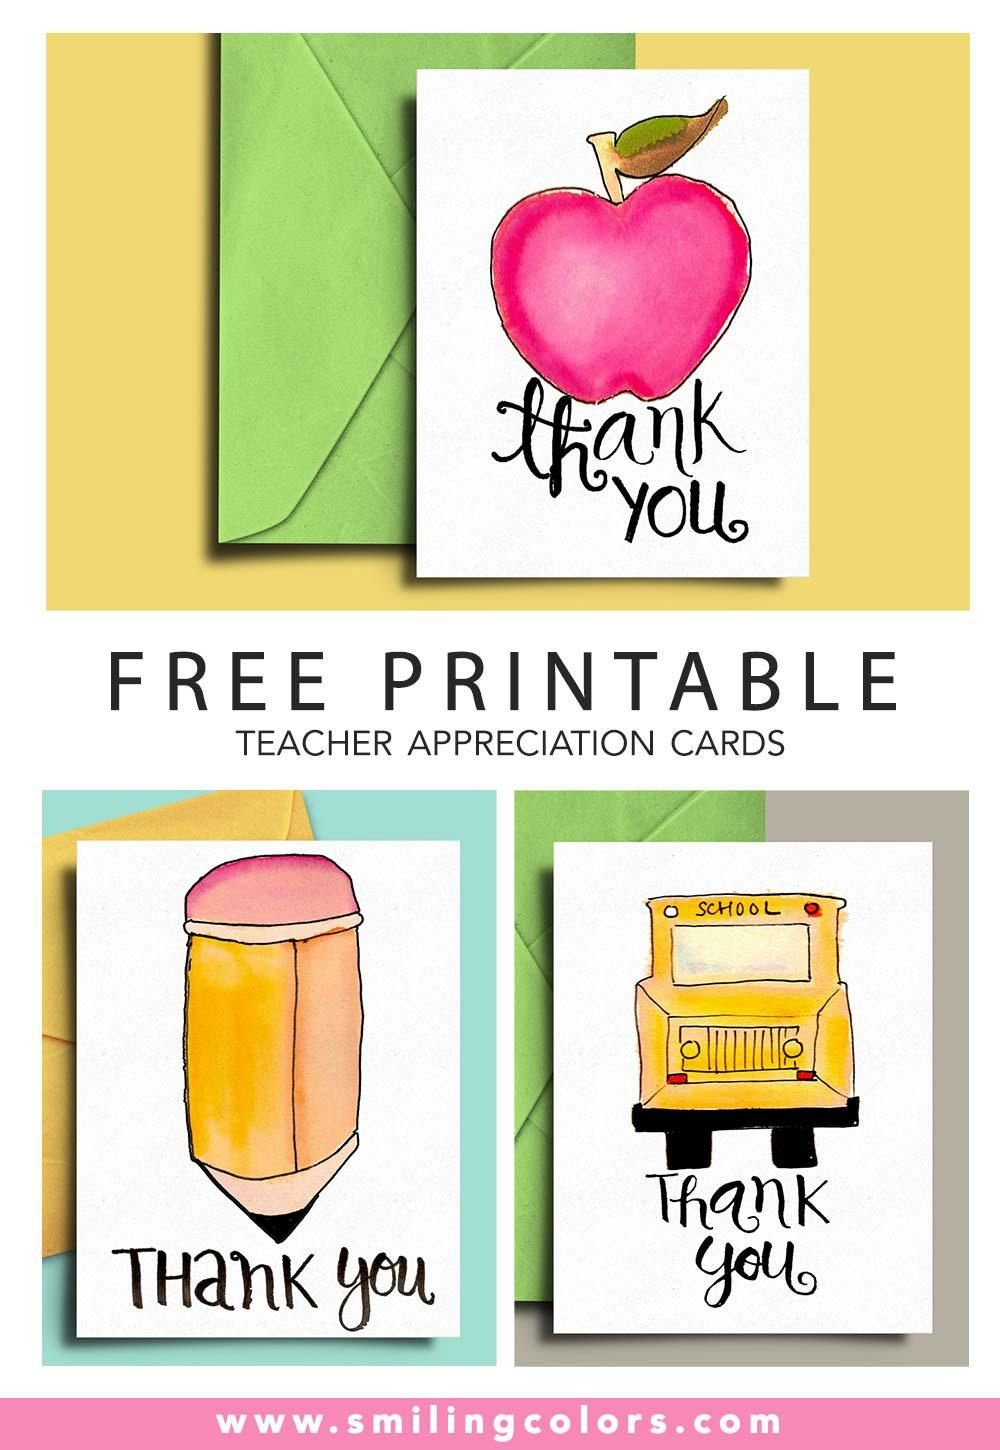 Thank You Card For Teacher And School Bus Driver With Free - Free Printable Teacher Appreciation Greeting Cards